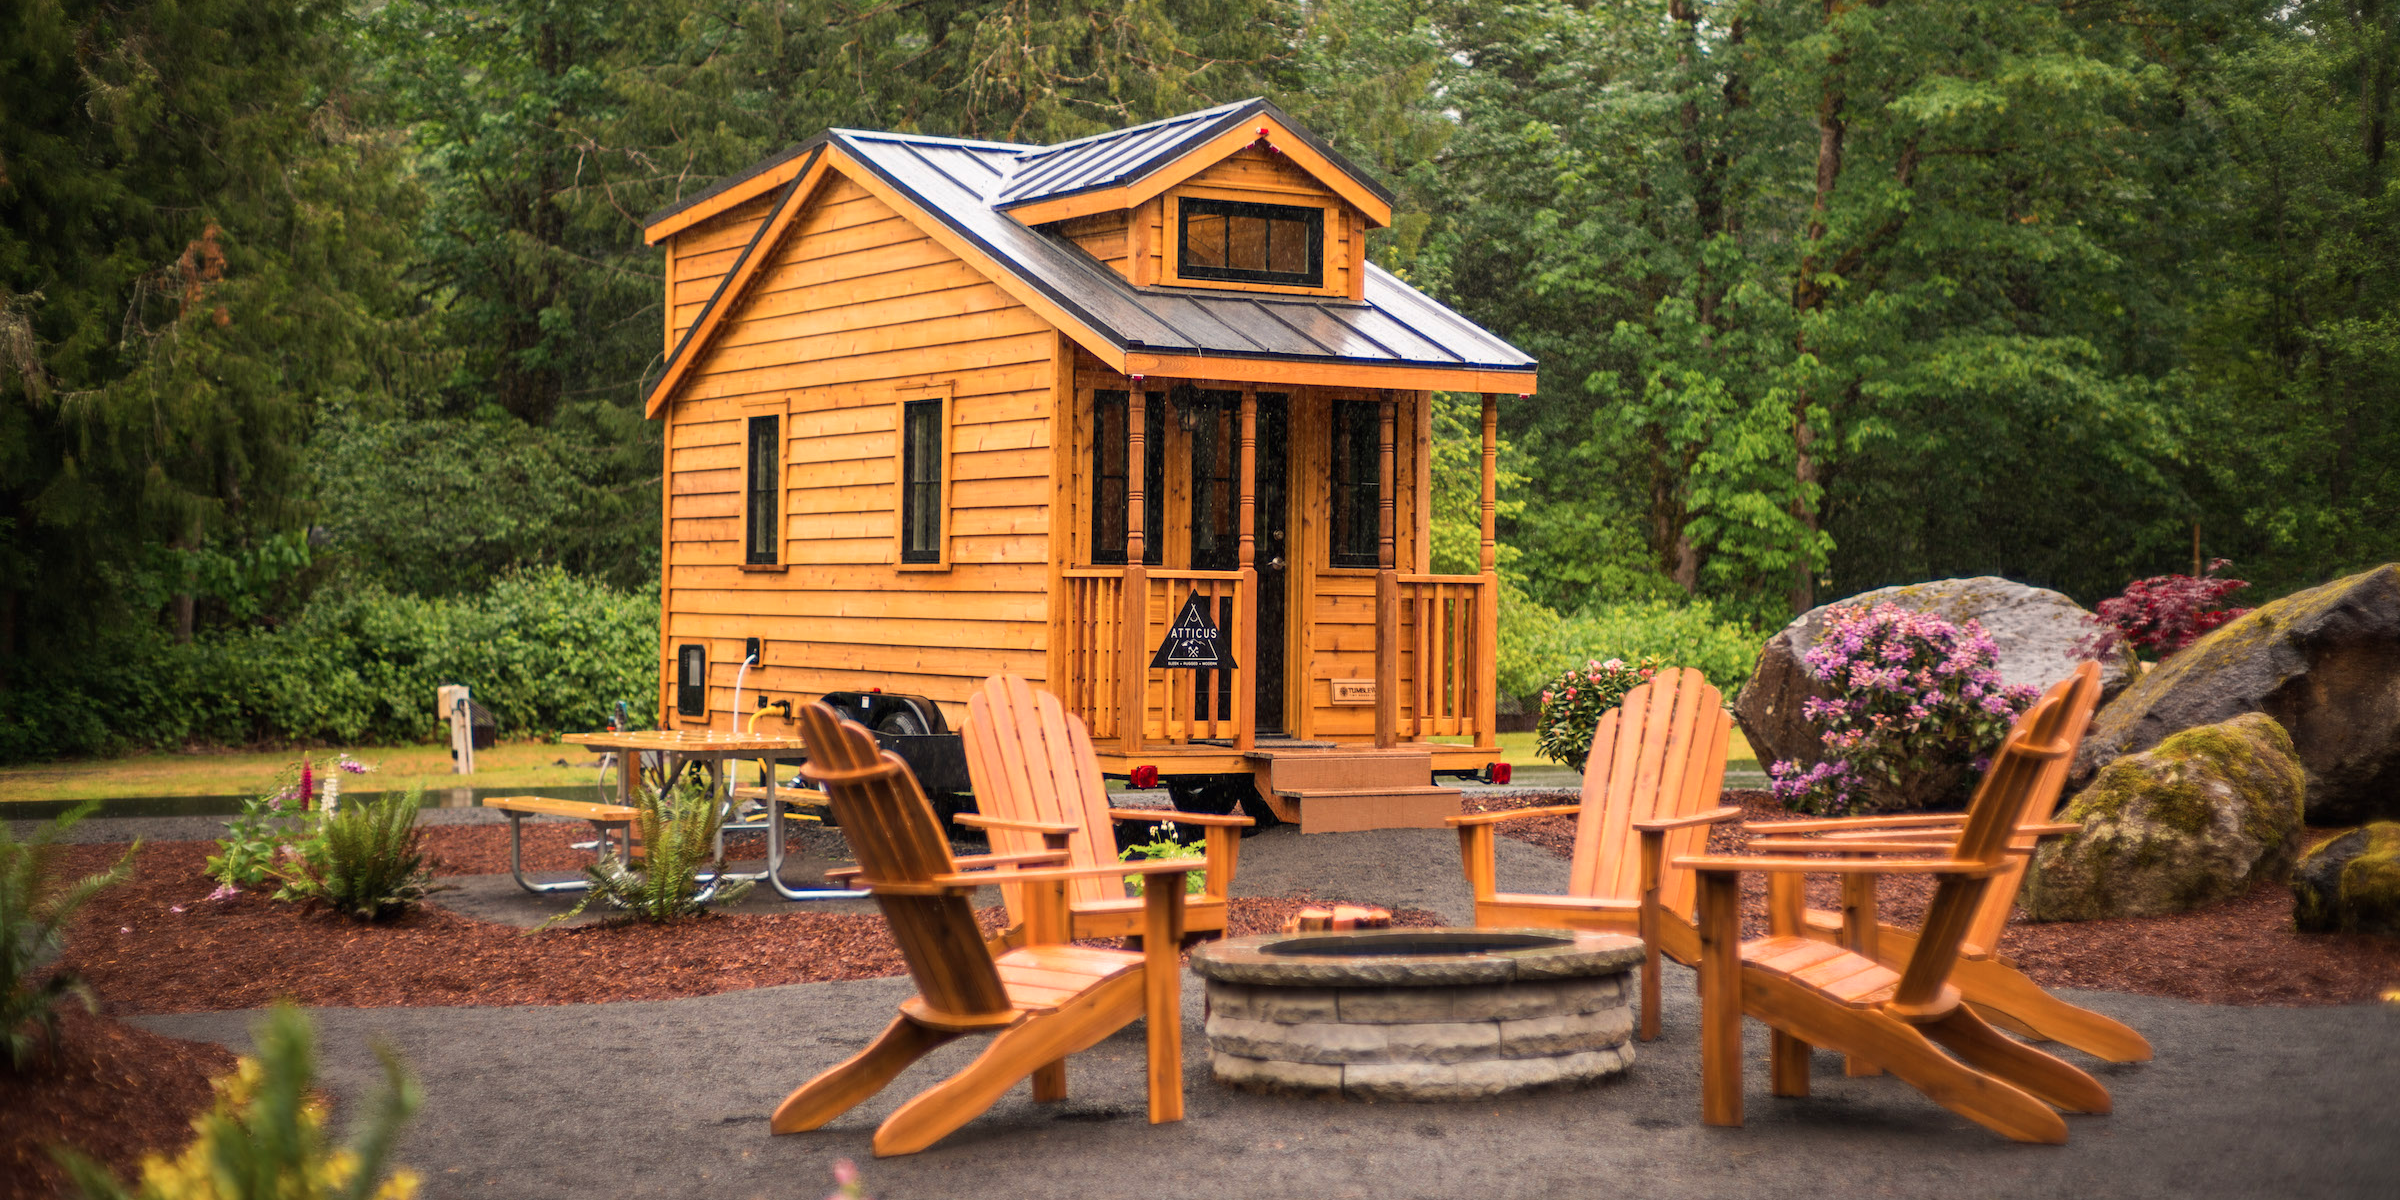 Simple Living In A Tiny House Village Could Be The Future With Decorating